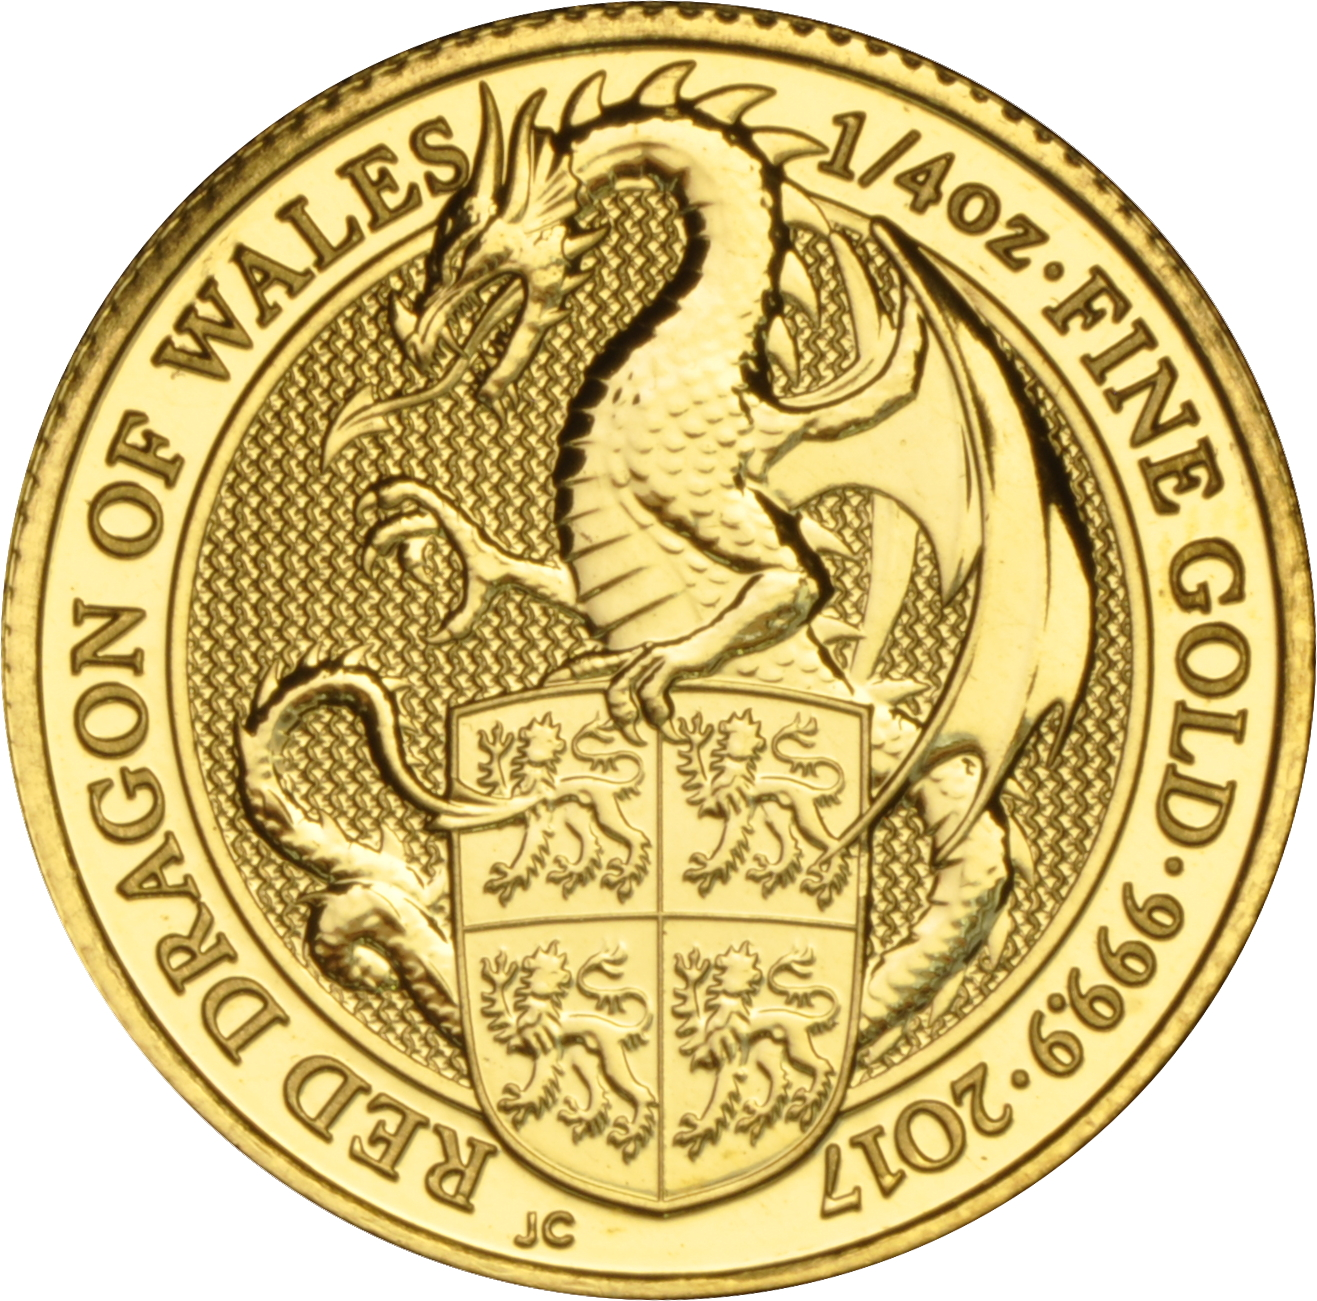 2017 1/4oz Gold Coin, The Red Dragon - Queen's Beast